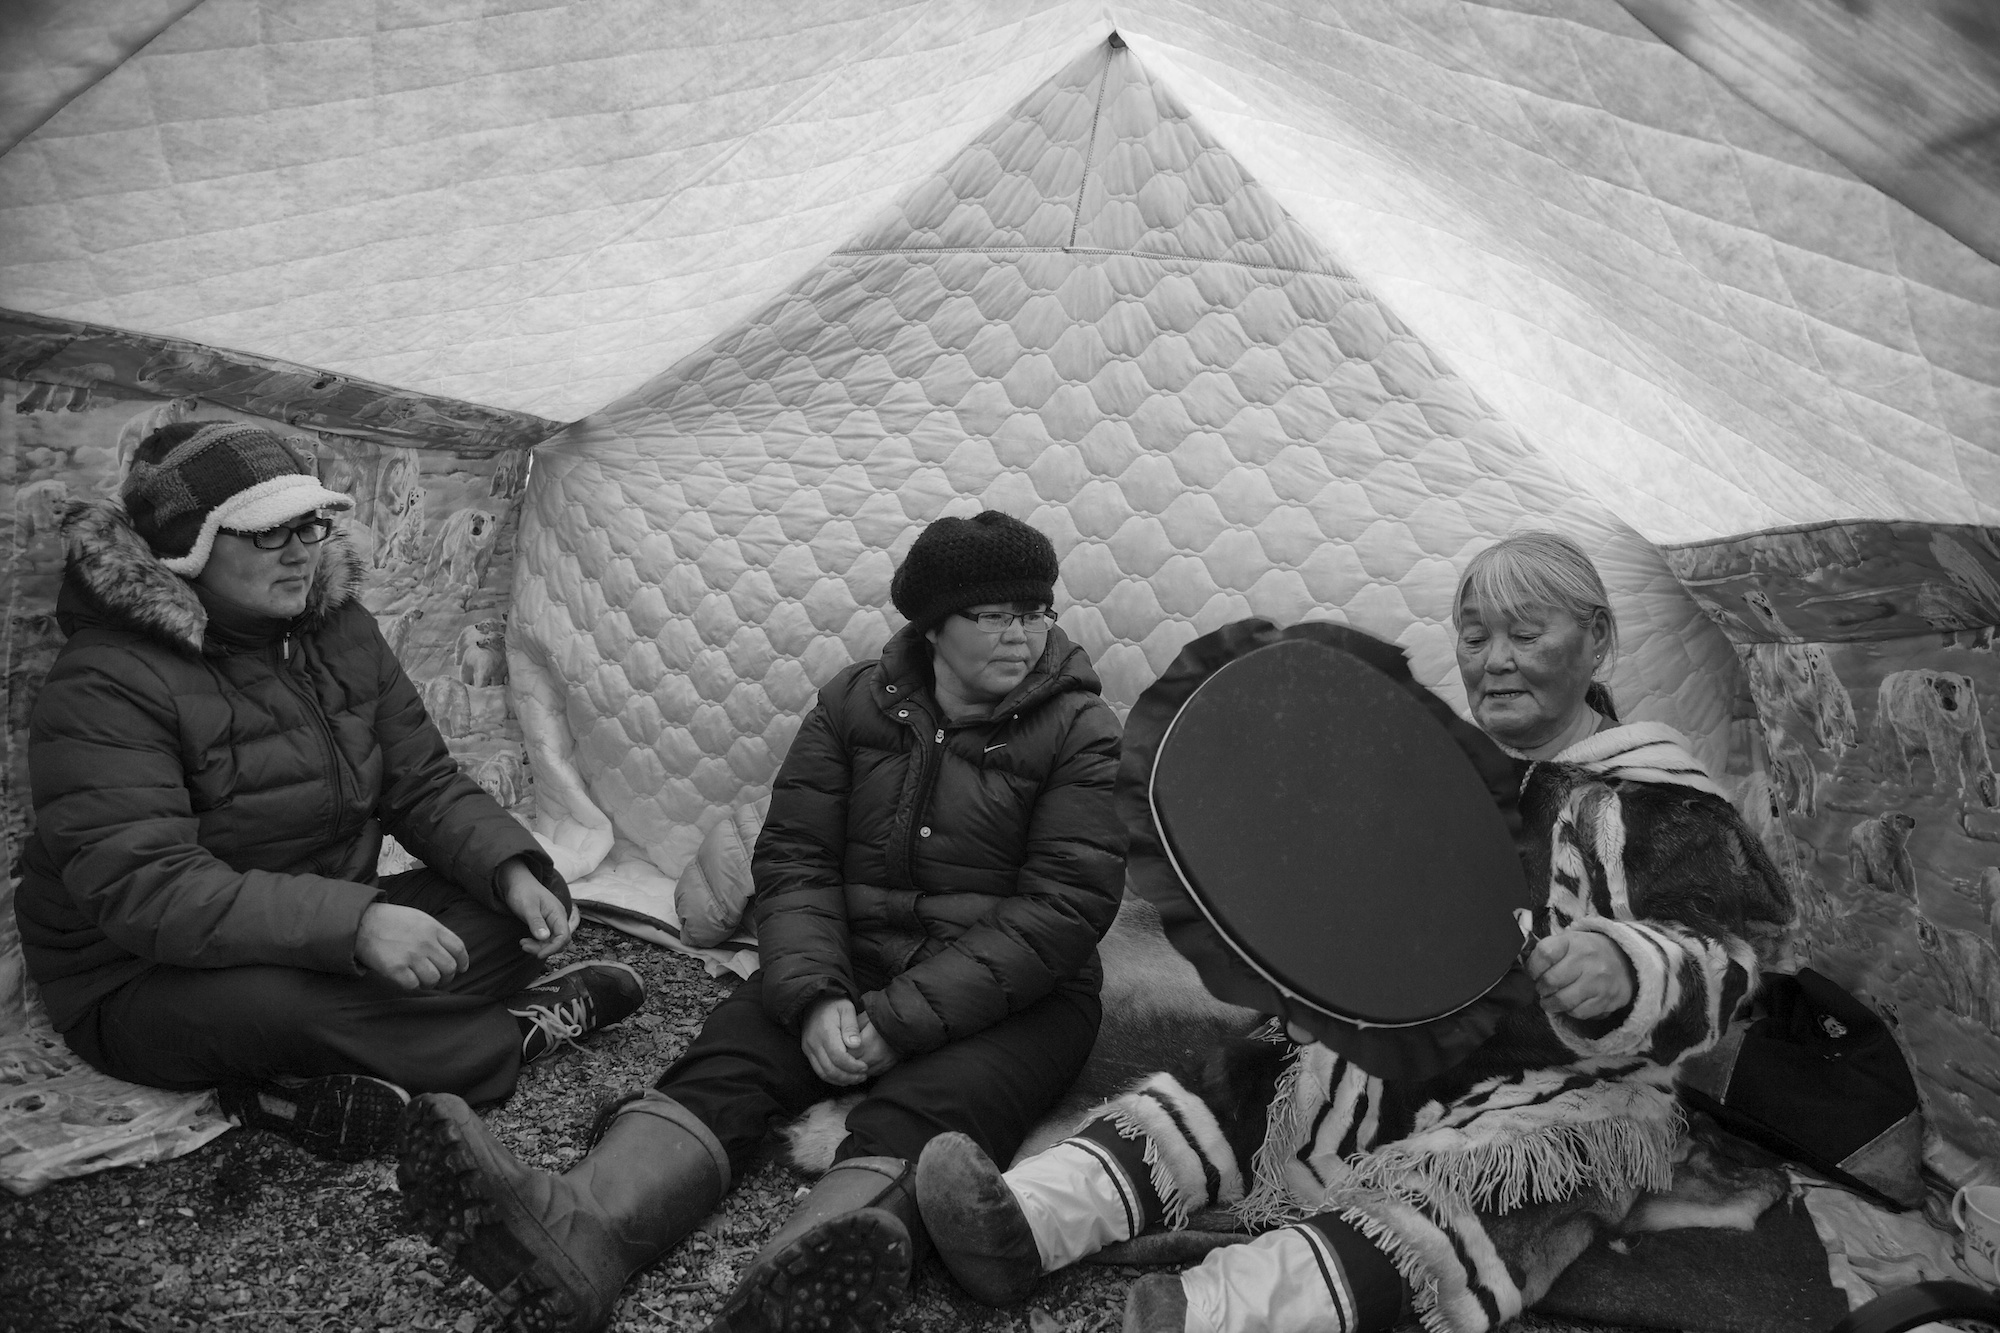 Drumming in a tent. Photo by Clare Kines.